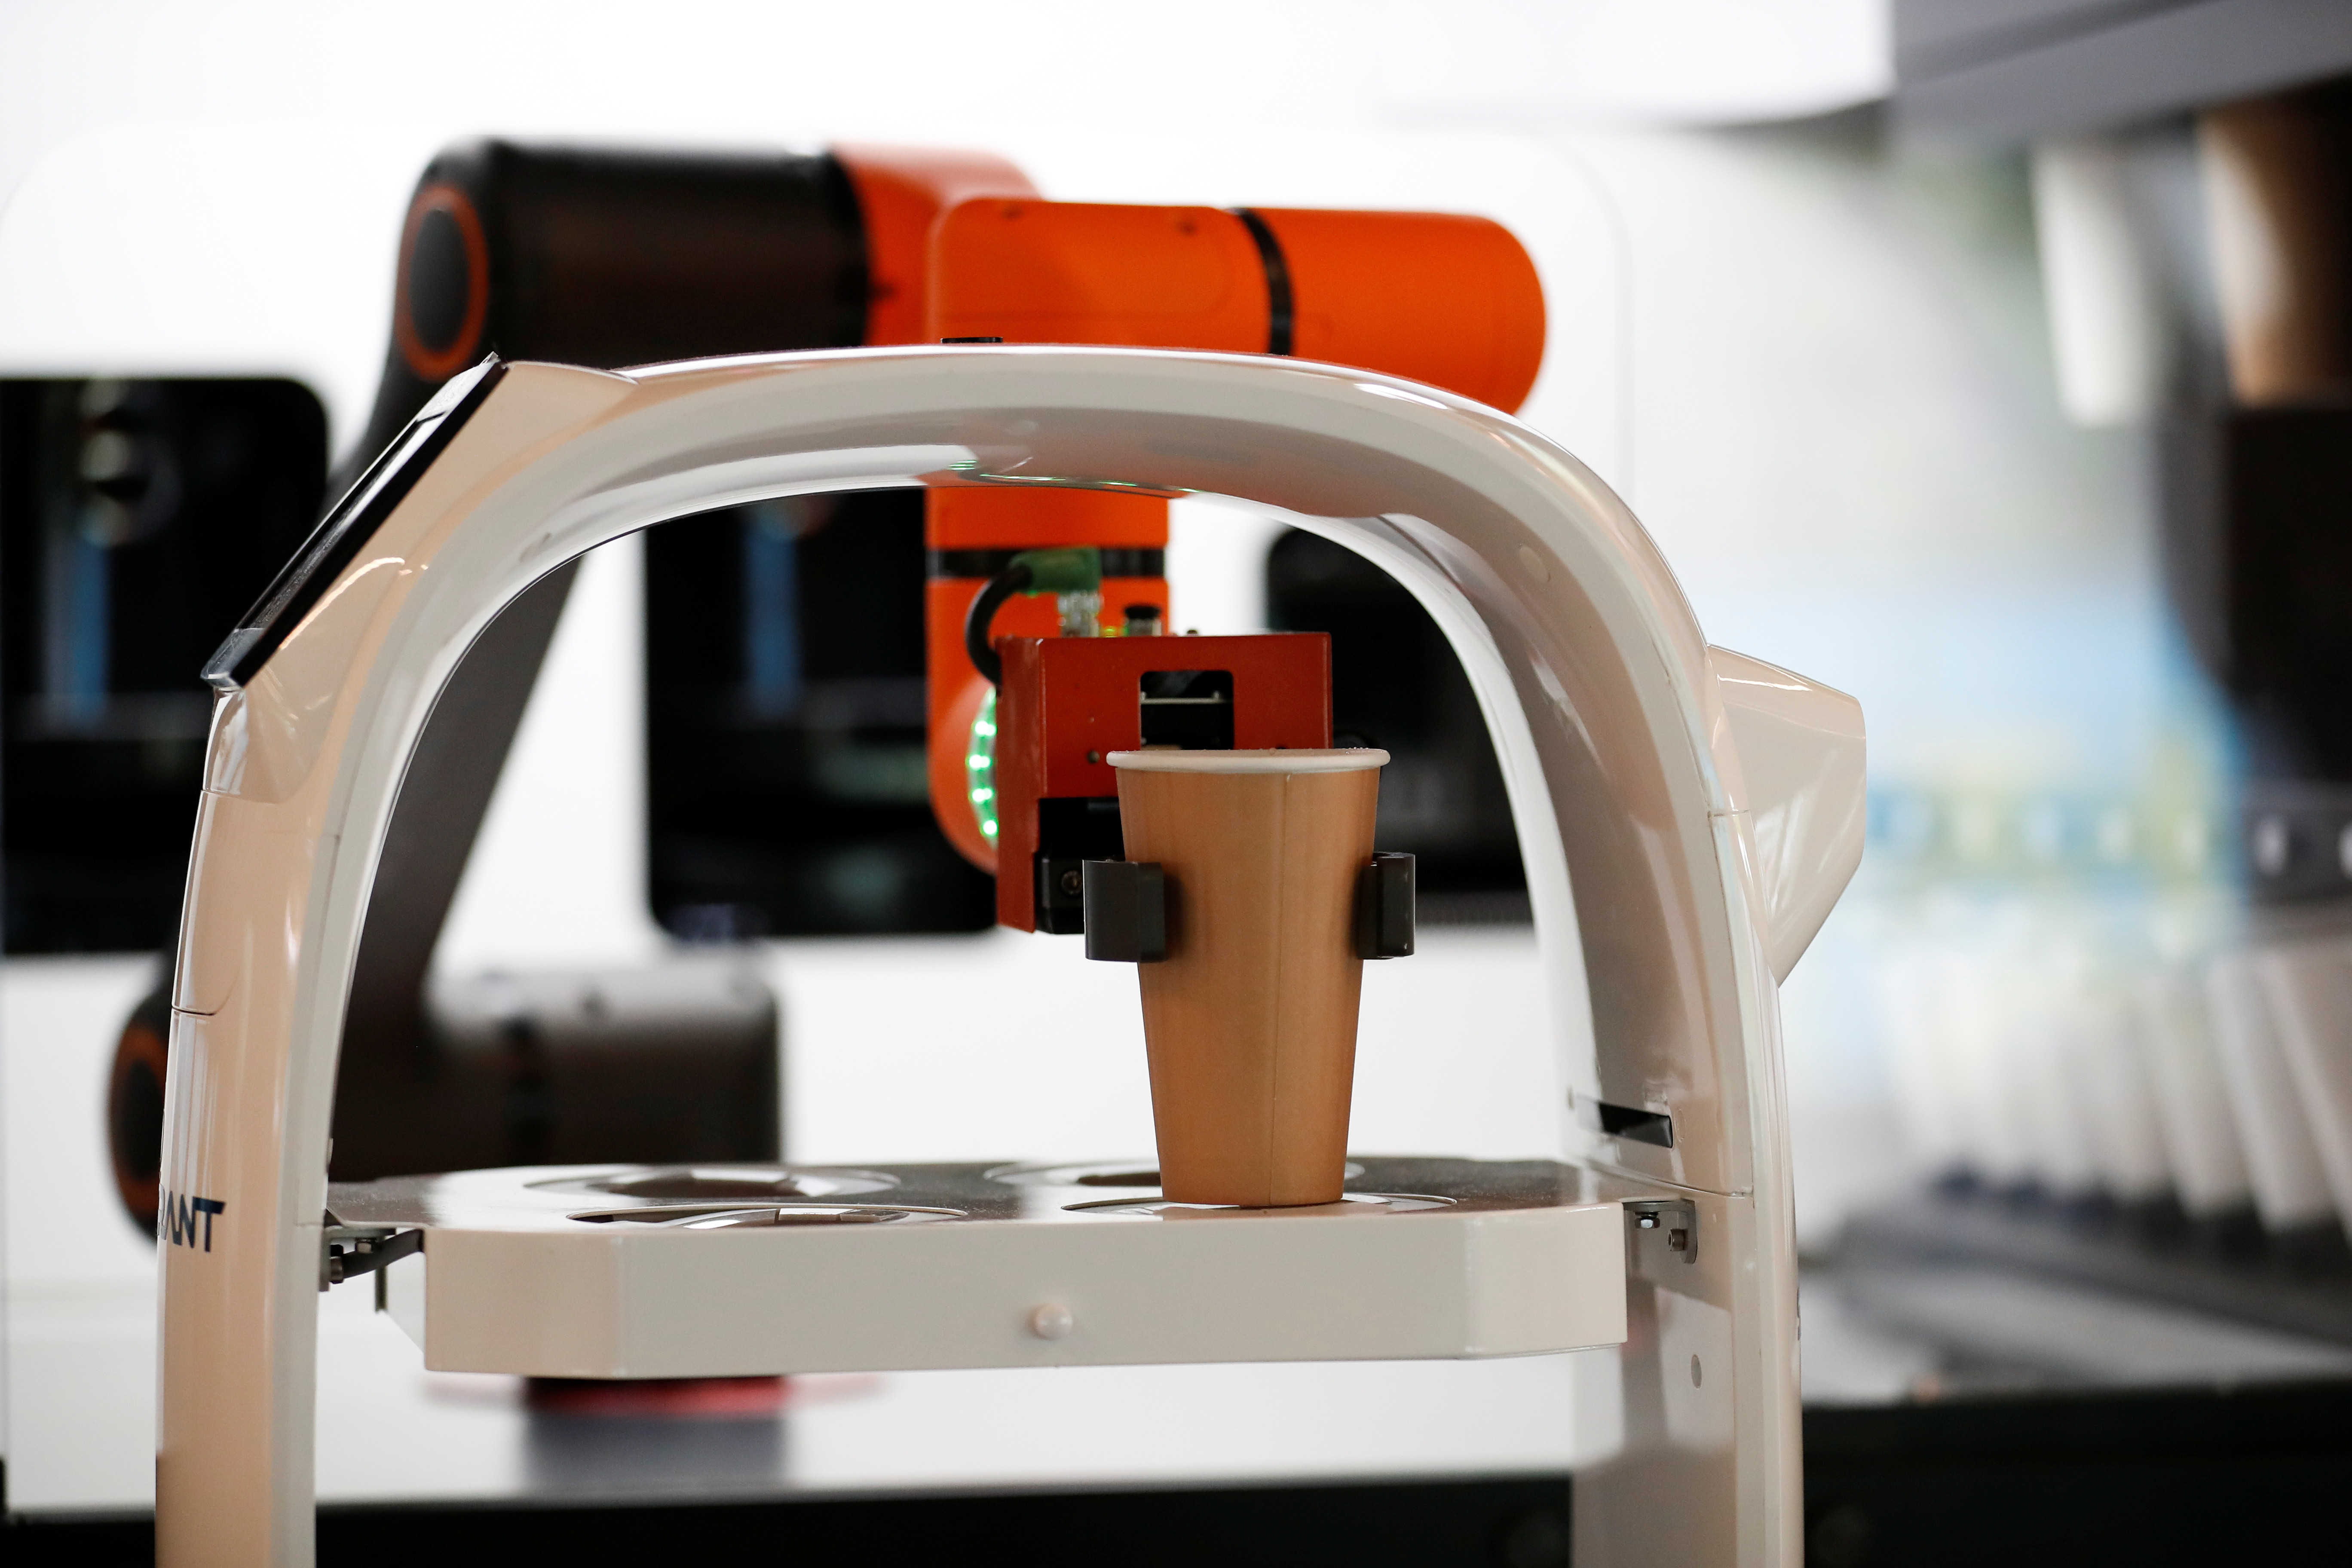 A robot that takes orders, makes coffee and brings the drinks straight to customers at their seats is seen at a cafe in Daejeon, South Korea, May 25, 2020. REUTERS/Kim Hong-Ji - RC2FVG9ZIY1S